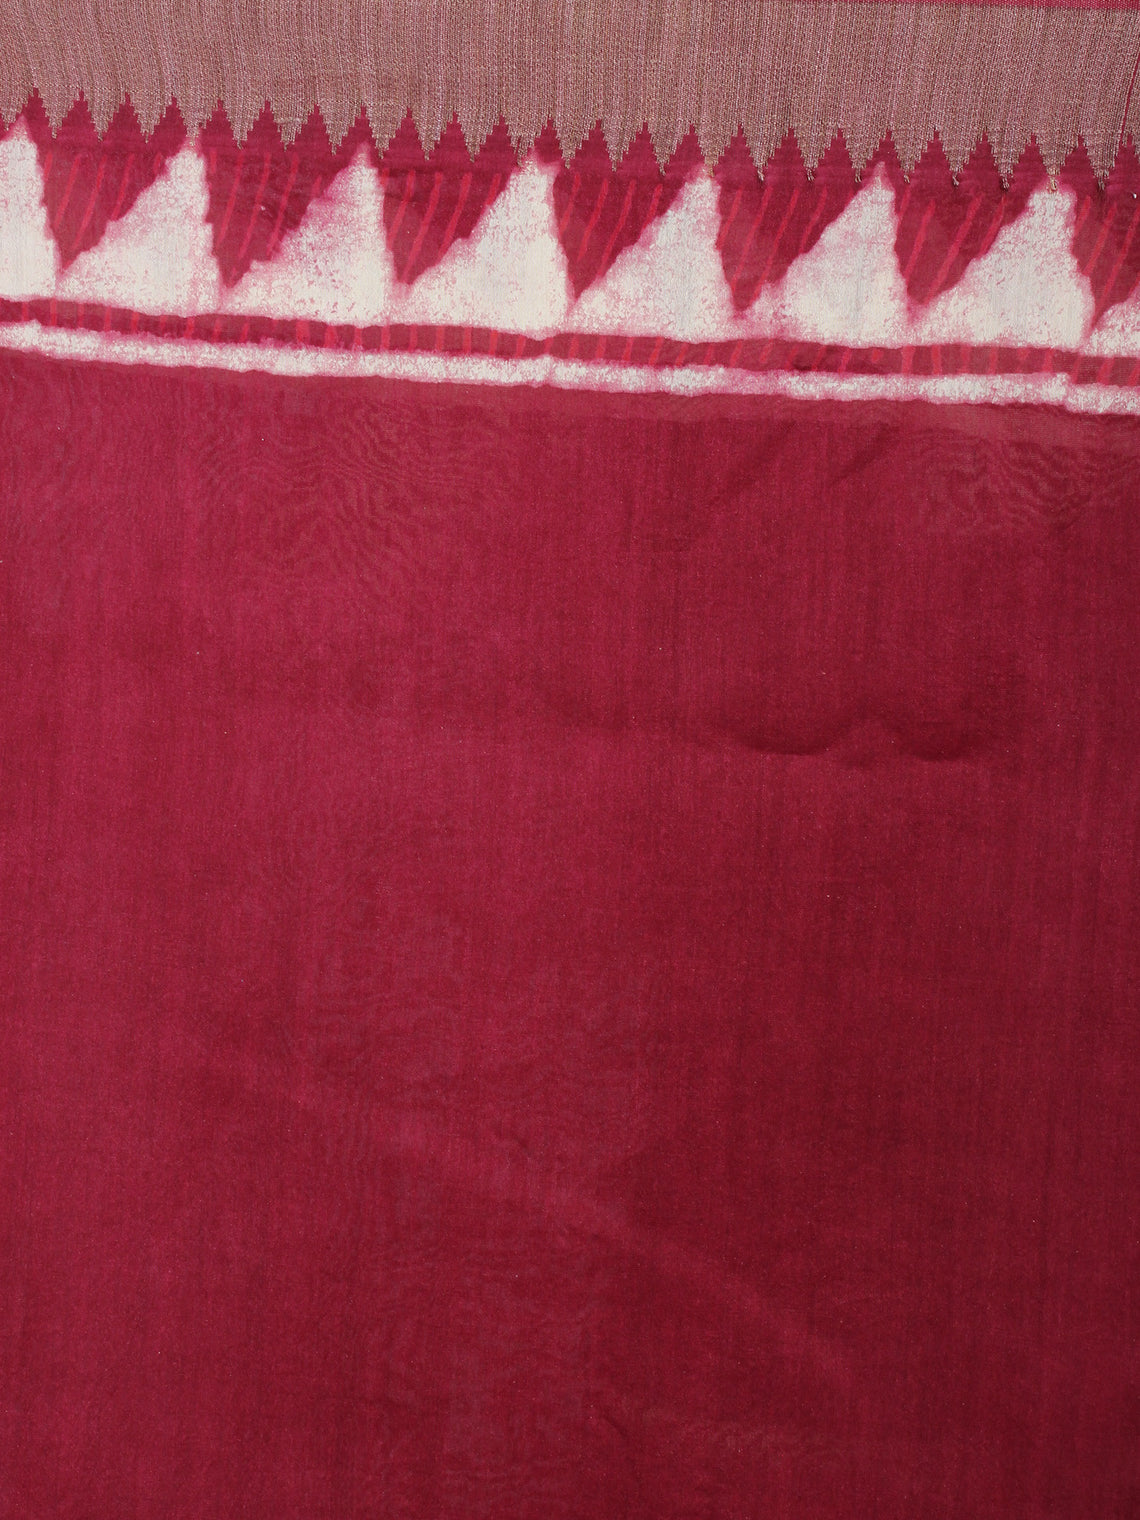 Cherry Beige Hand Block Printed in Natural Vegetable Colors Chanderi Saree With Geecha Border - S03170504